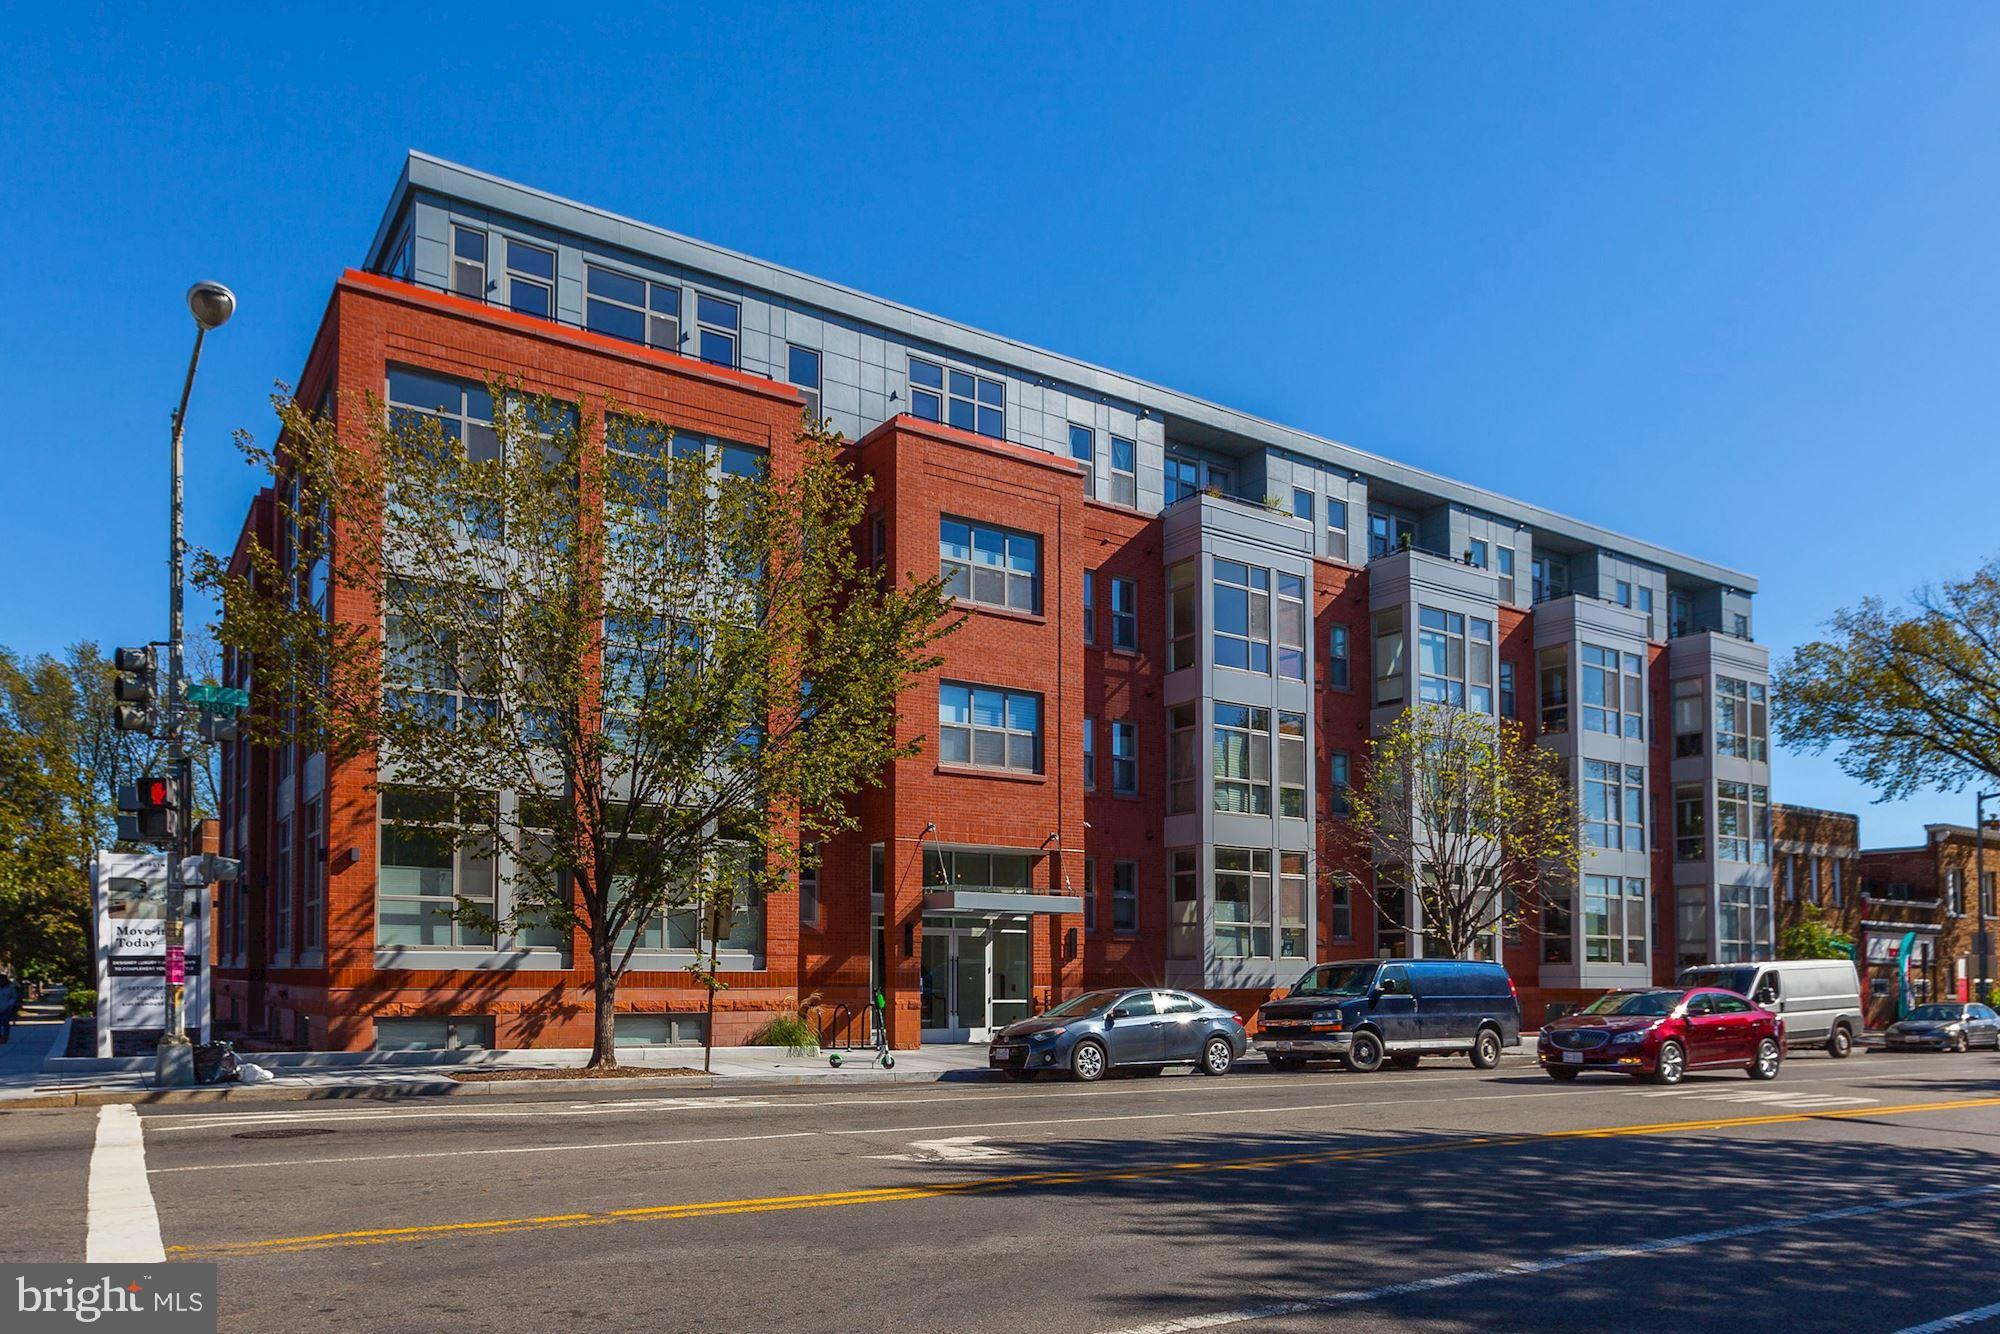 Welcome to the Kipling House, a modern upscale condominium built in 2017, surrounded by historic cha